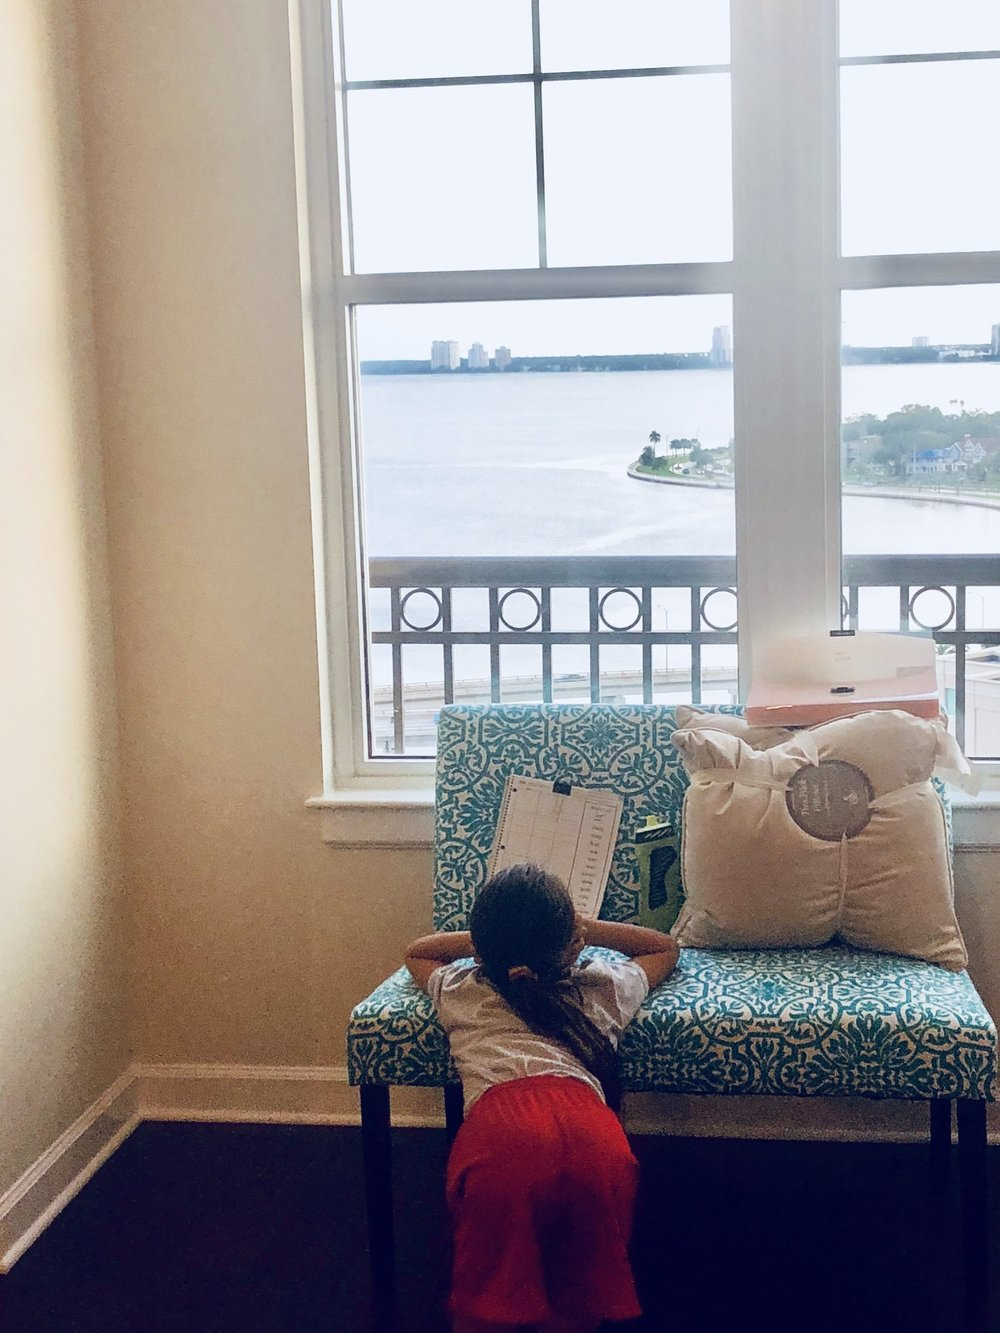 Studying for her spelling test - What a view :)